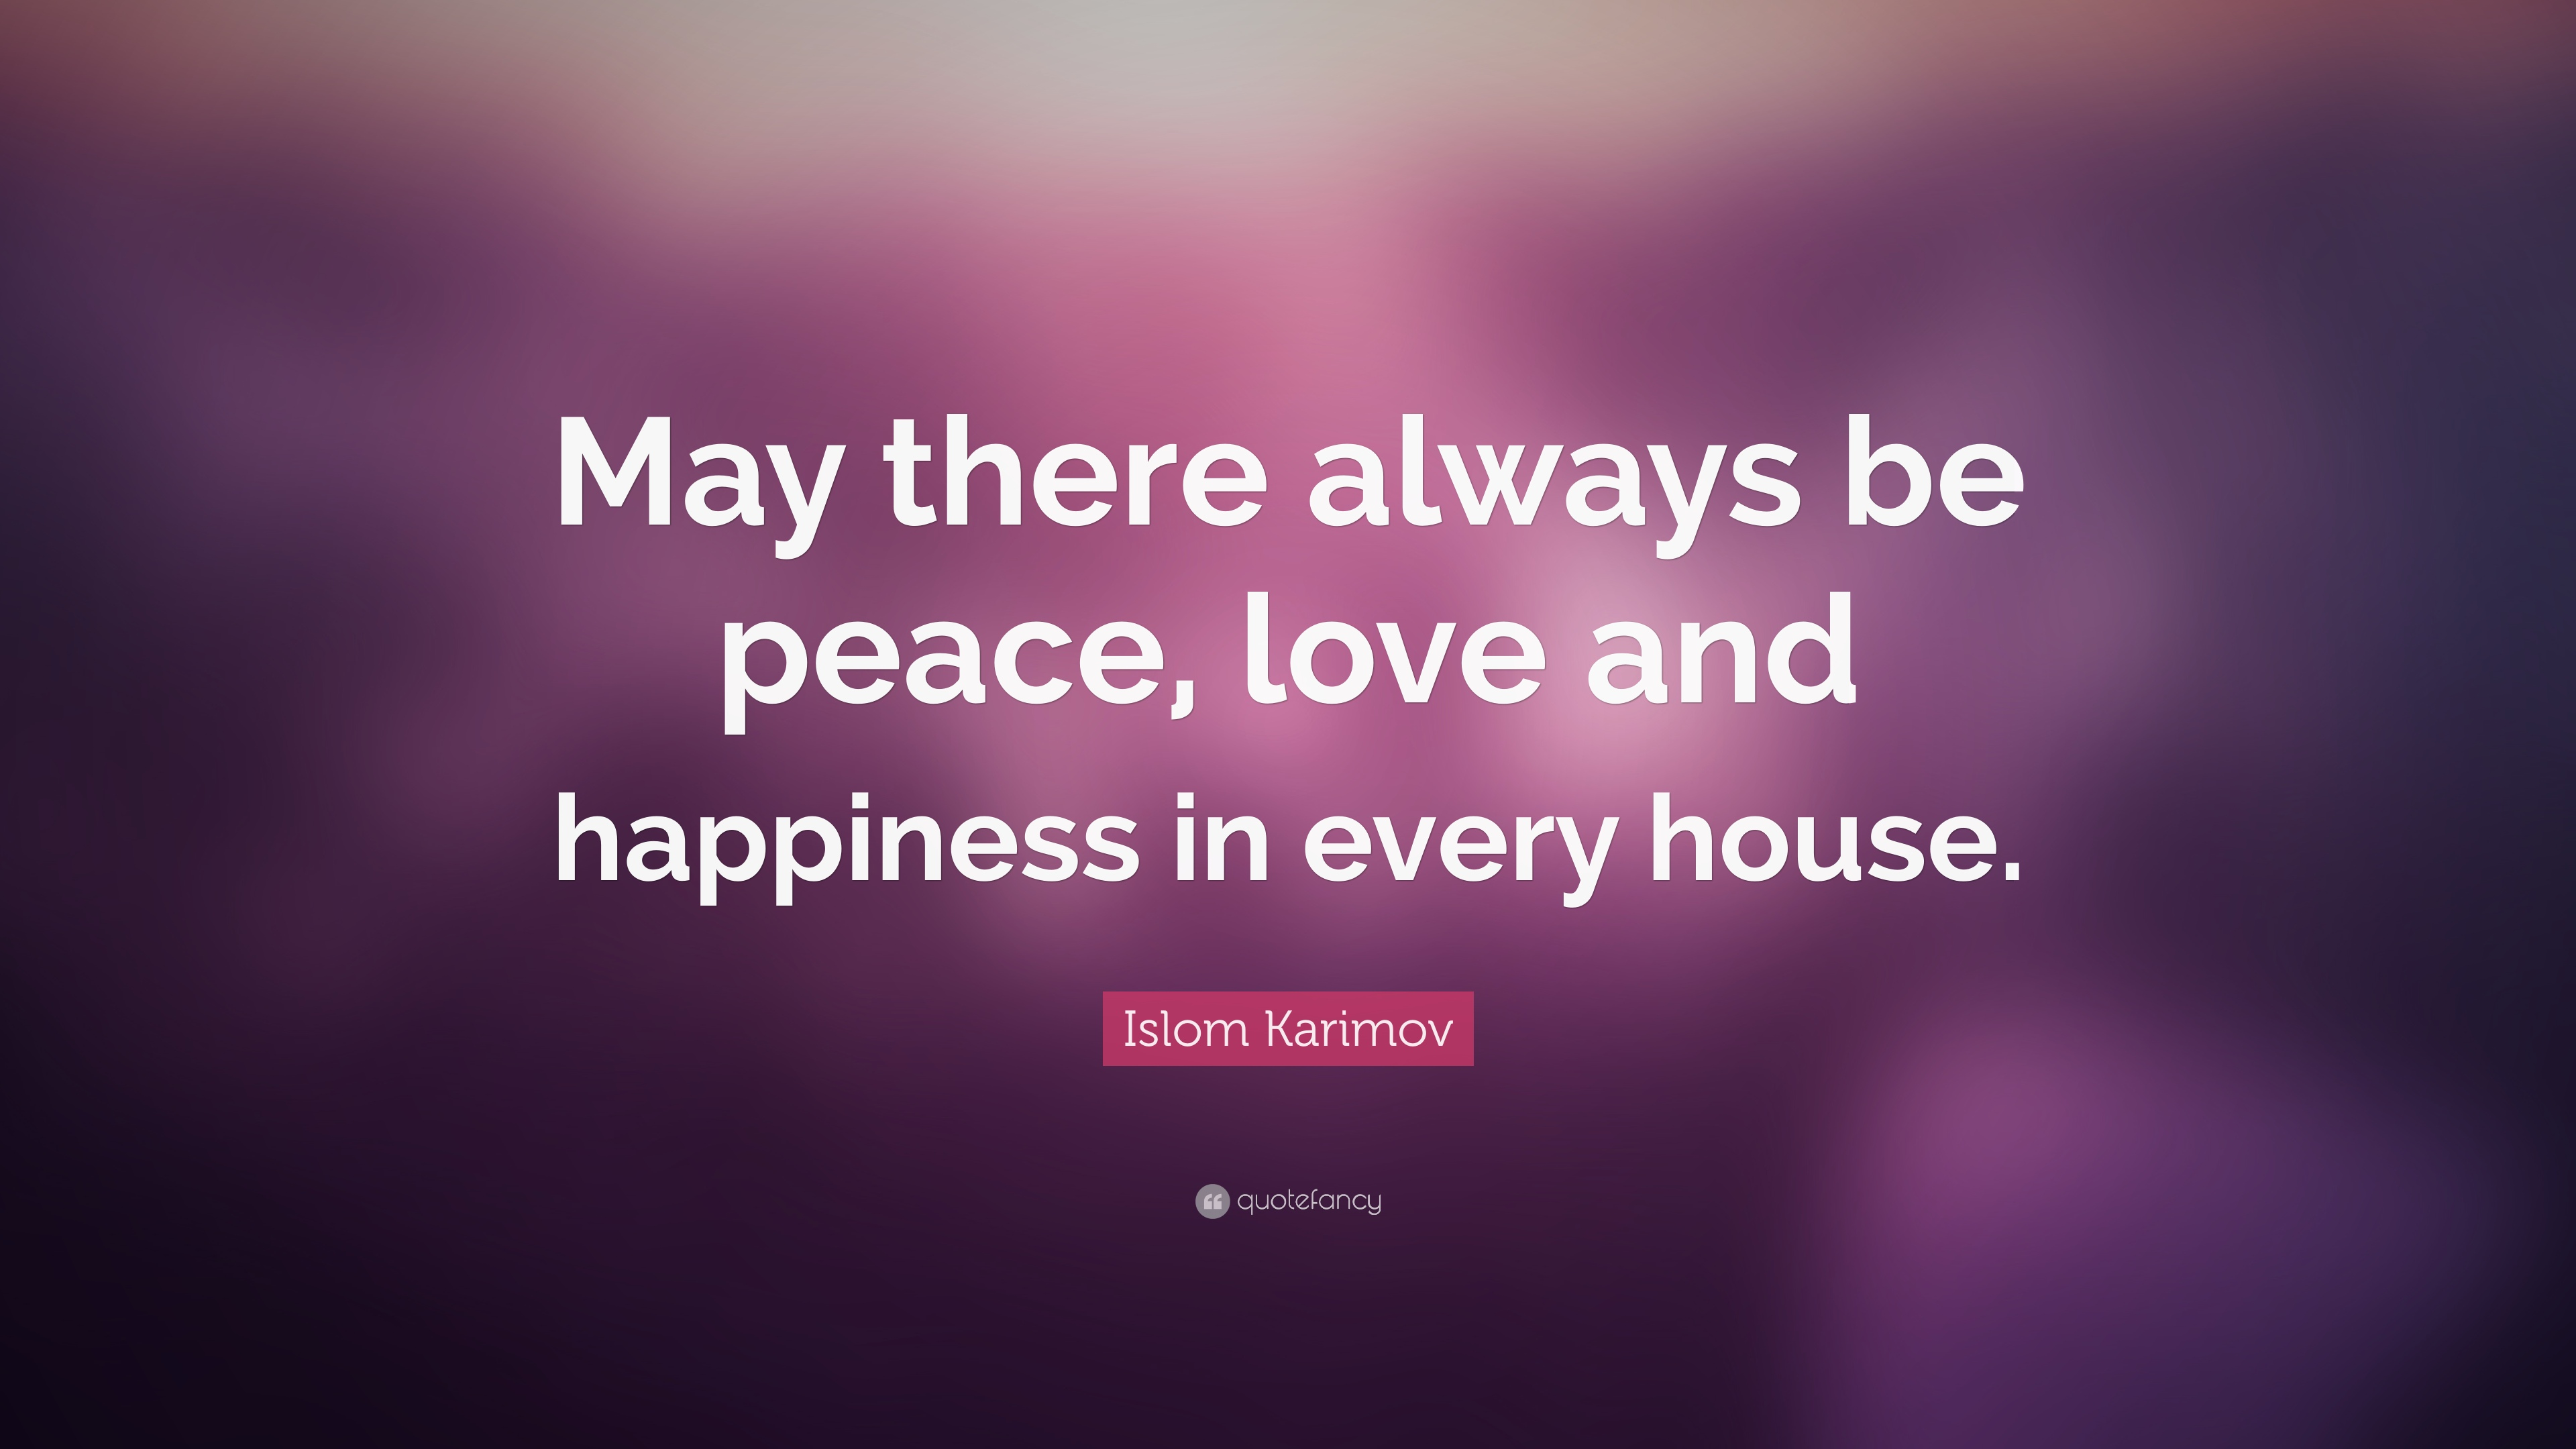 Peace Love And Happiness Quotes Islom Karimov Quote U201cMay There Always Be Peace  Love And